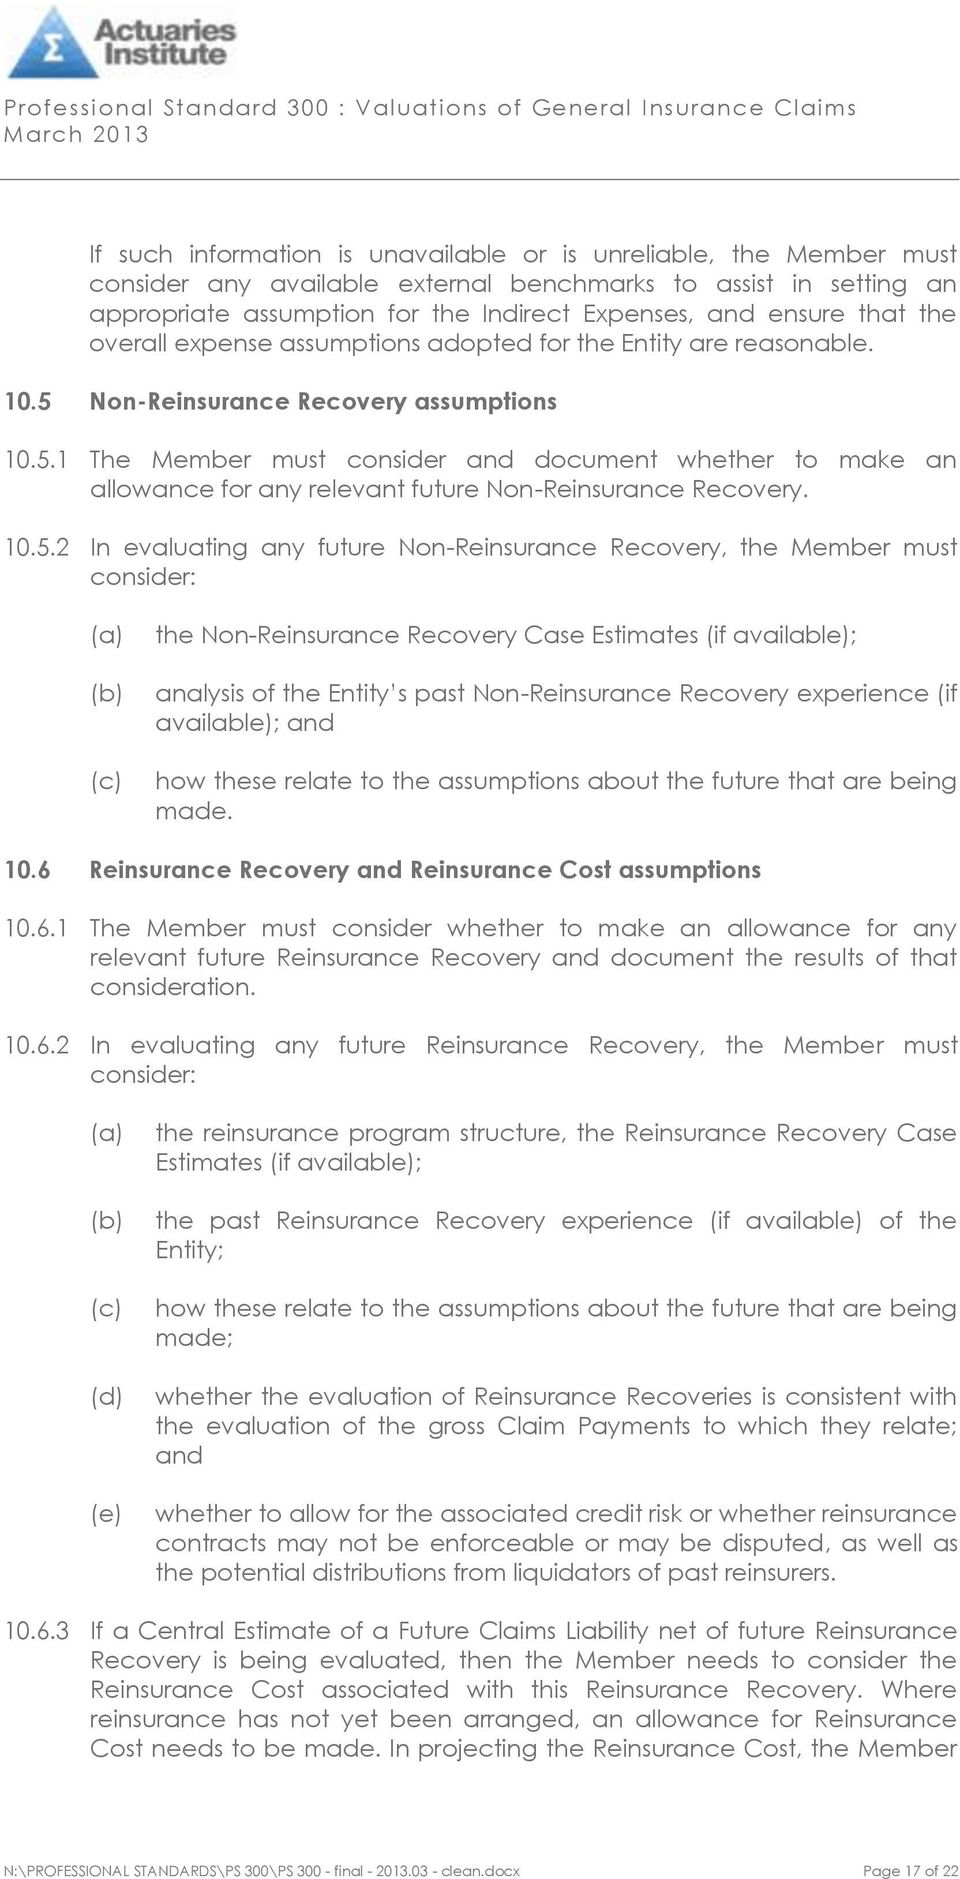 10.5.2 In evaluating any future Non-Reinsurance Recovery, the Member must consider: the Non-Reinsurance Recovery Case Estimates (if available); analysis of the Entity s past Non-Reinsurance Recovery